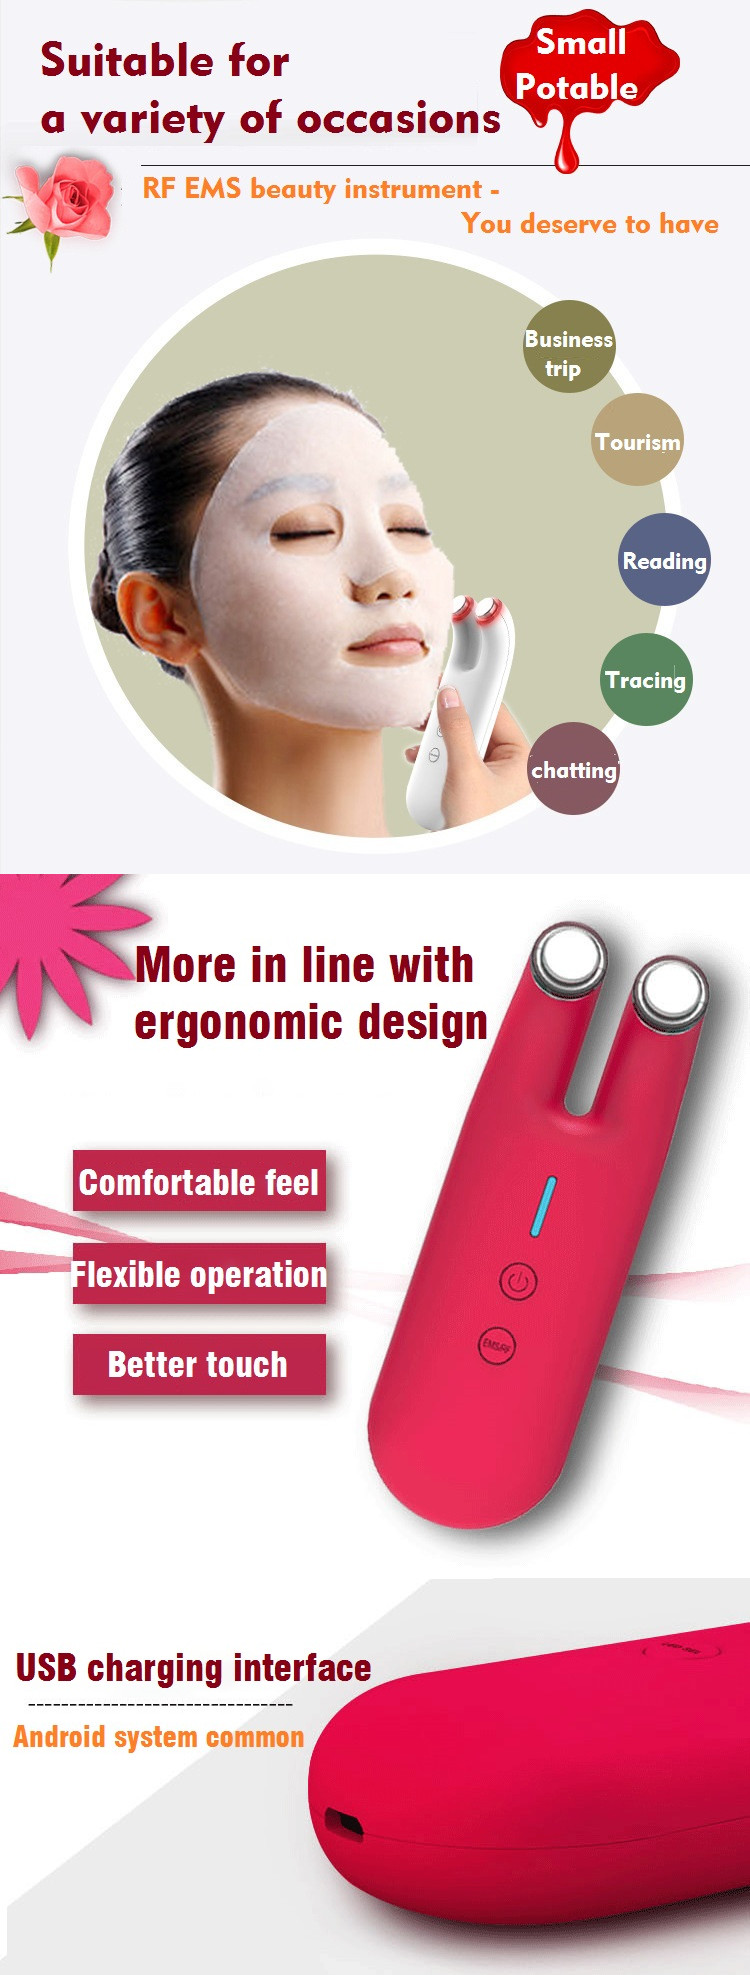 New arrival facial kit skin care oem machine home use portable RF EMS beauty instrument